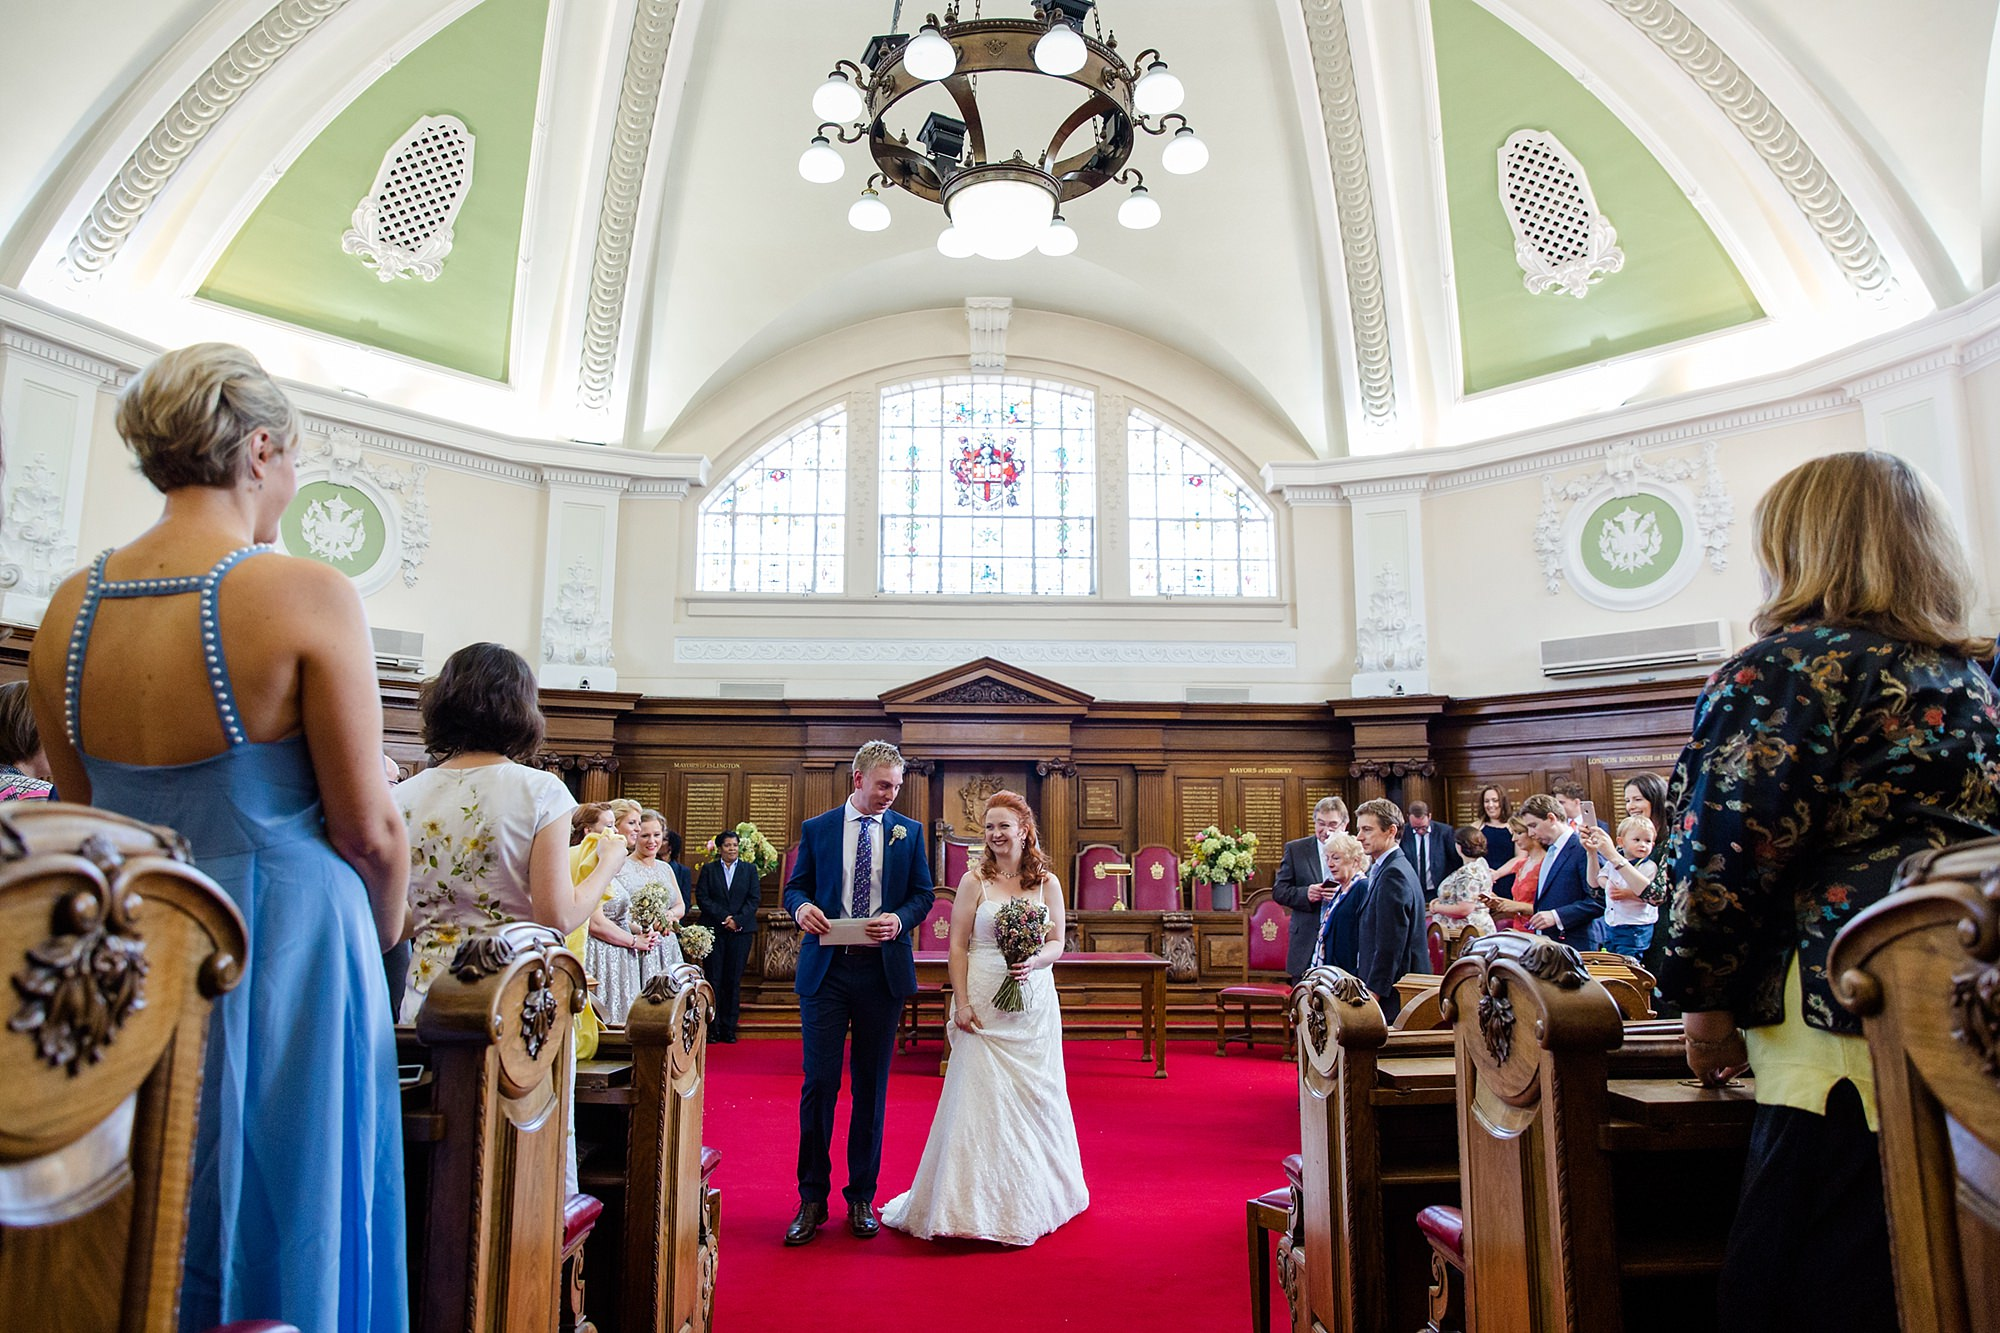 oyster shed wedding bride and groom exit wedding ceremony at islington town hall